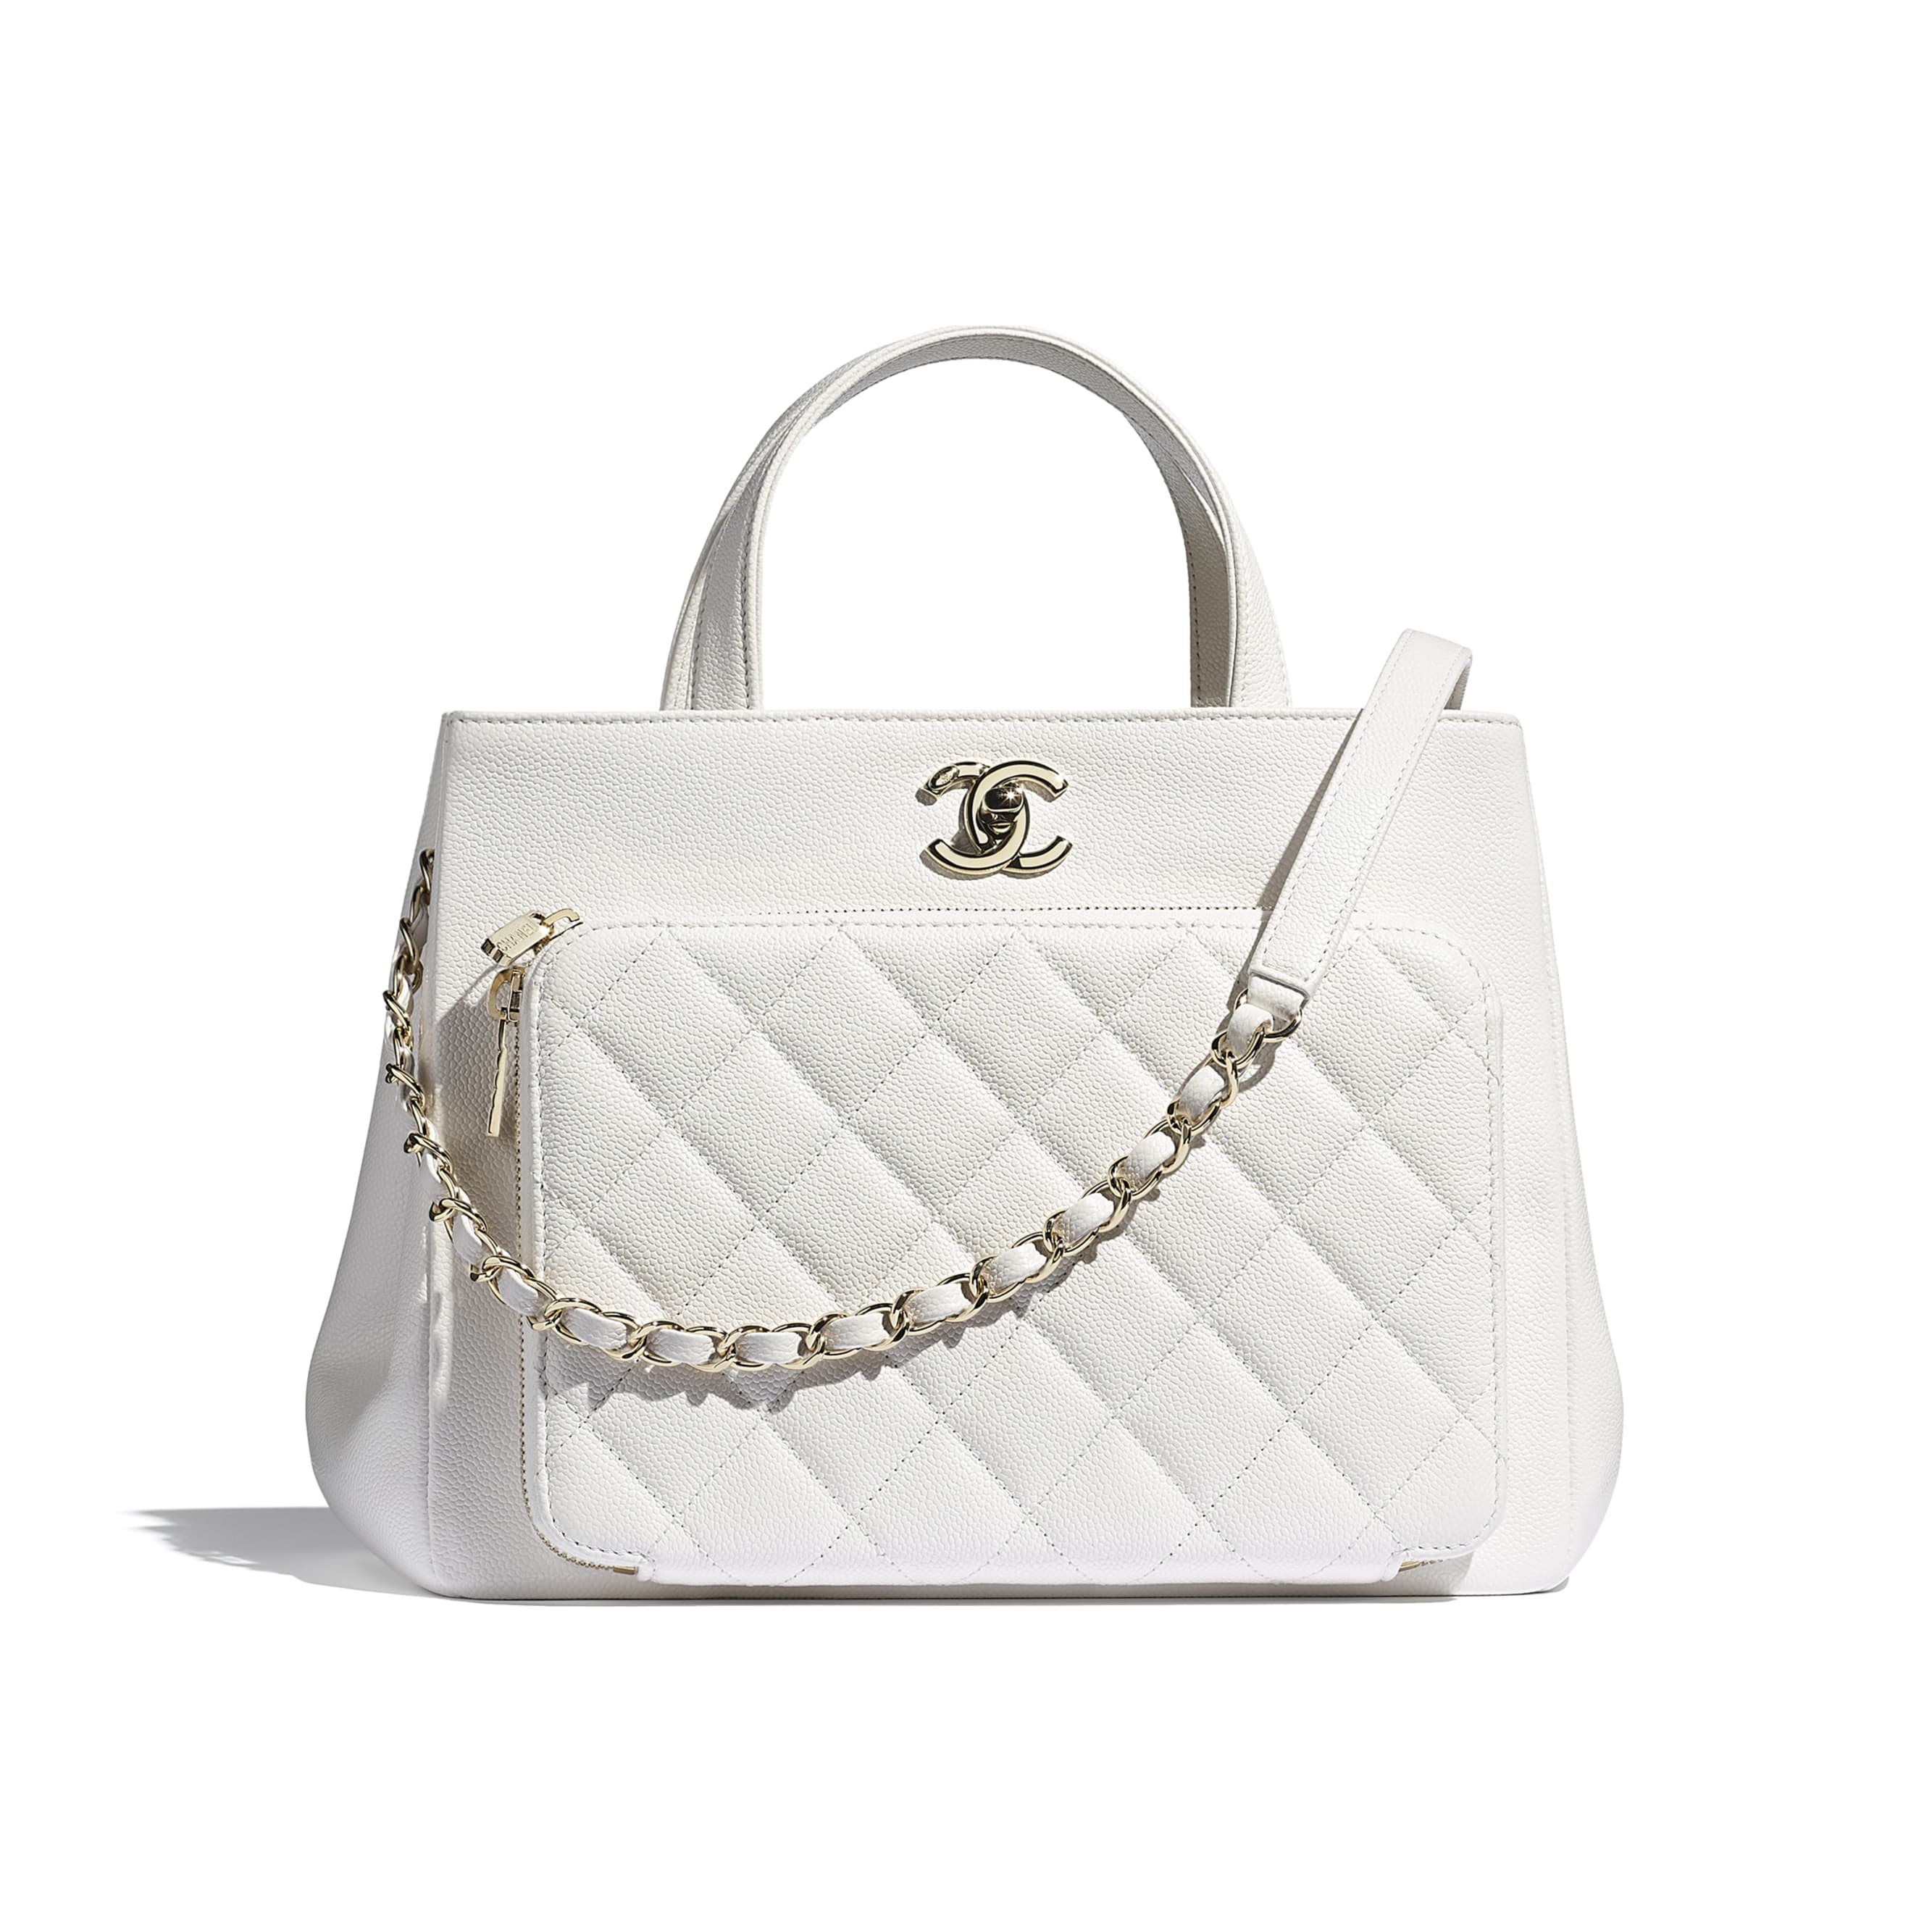 Small Tote - White - Grained Calfskin & Gold-Tone Metal - CHANEL - Default view - see standard sized version